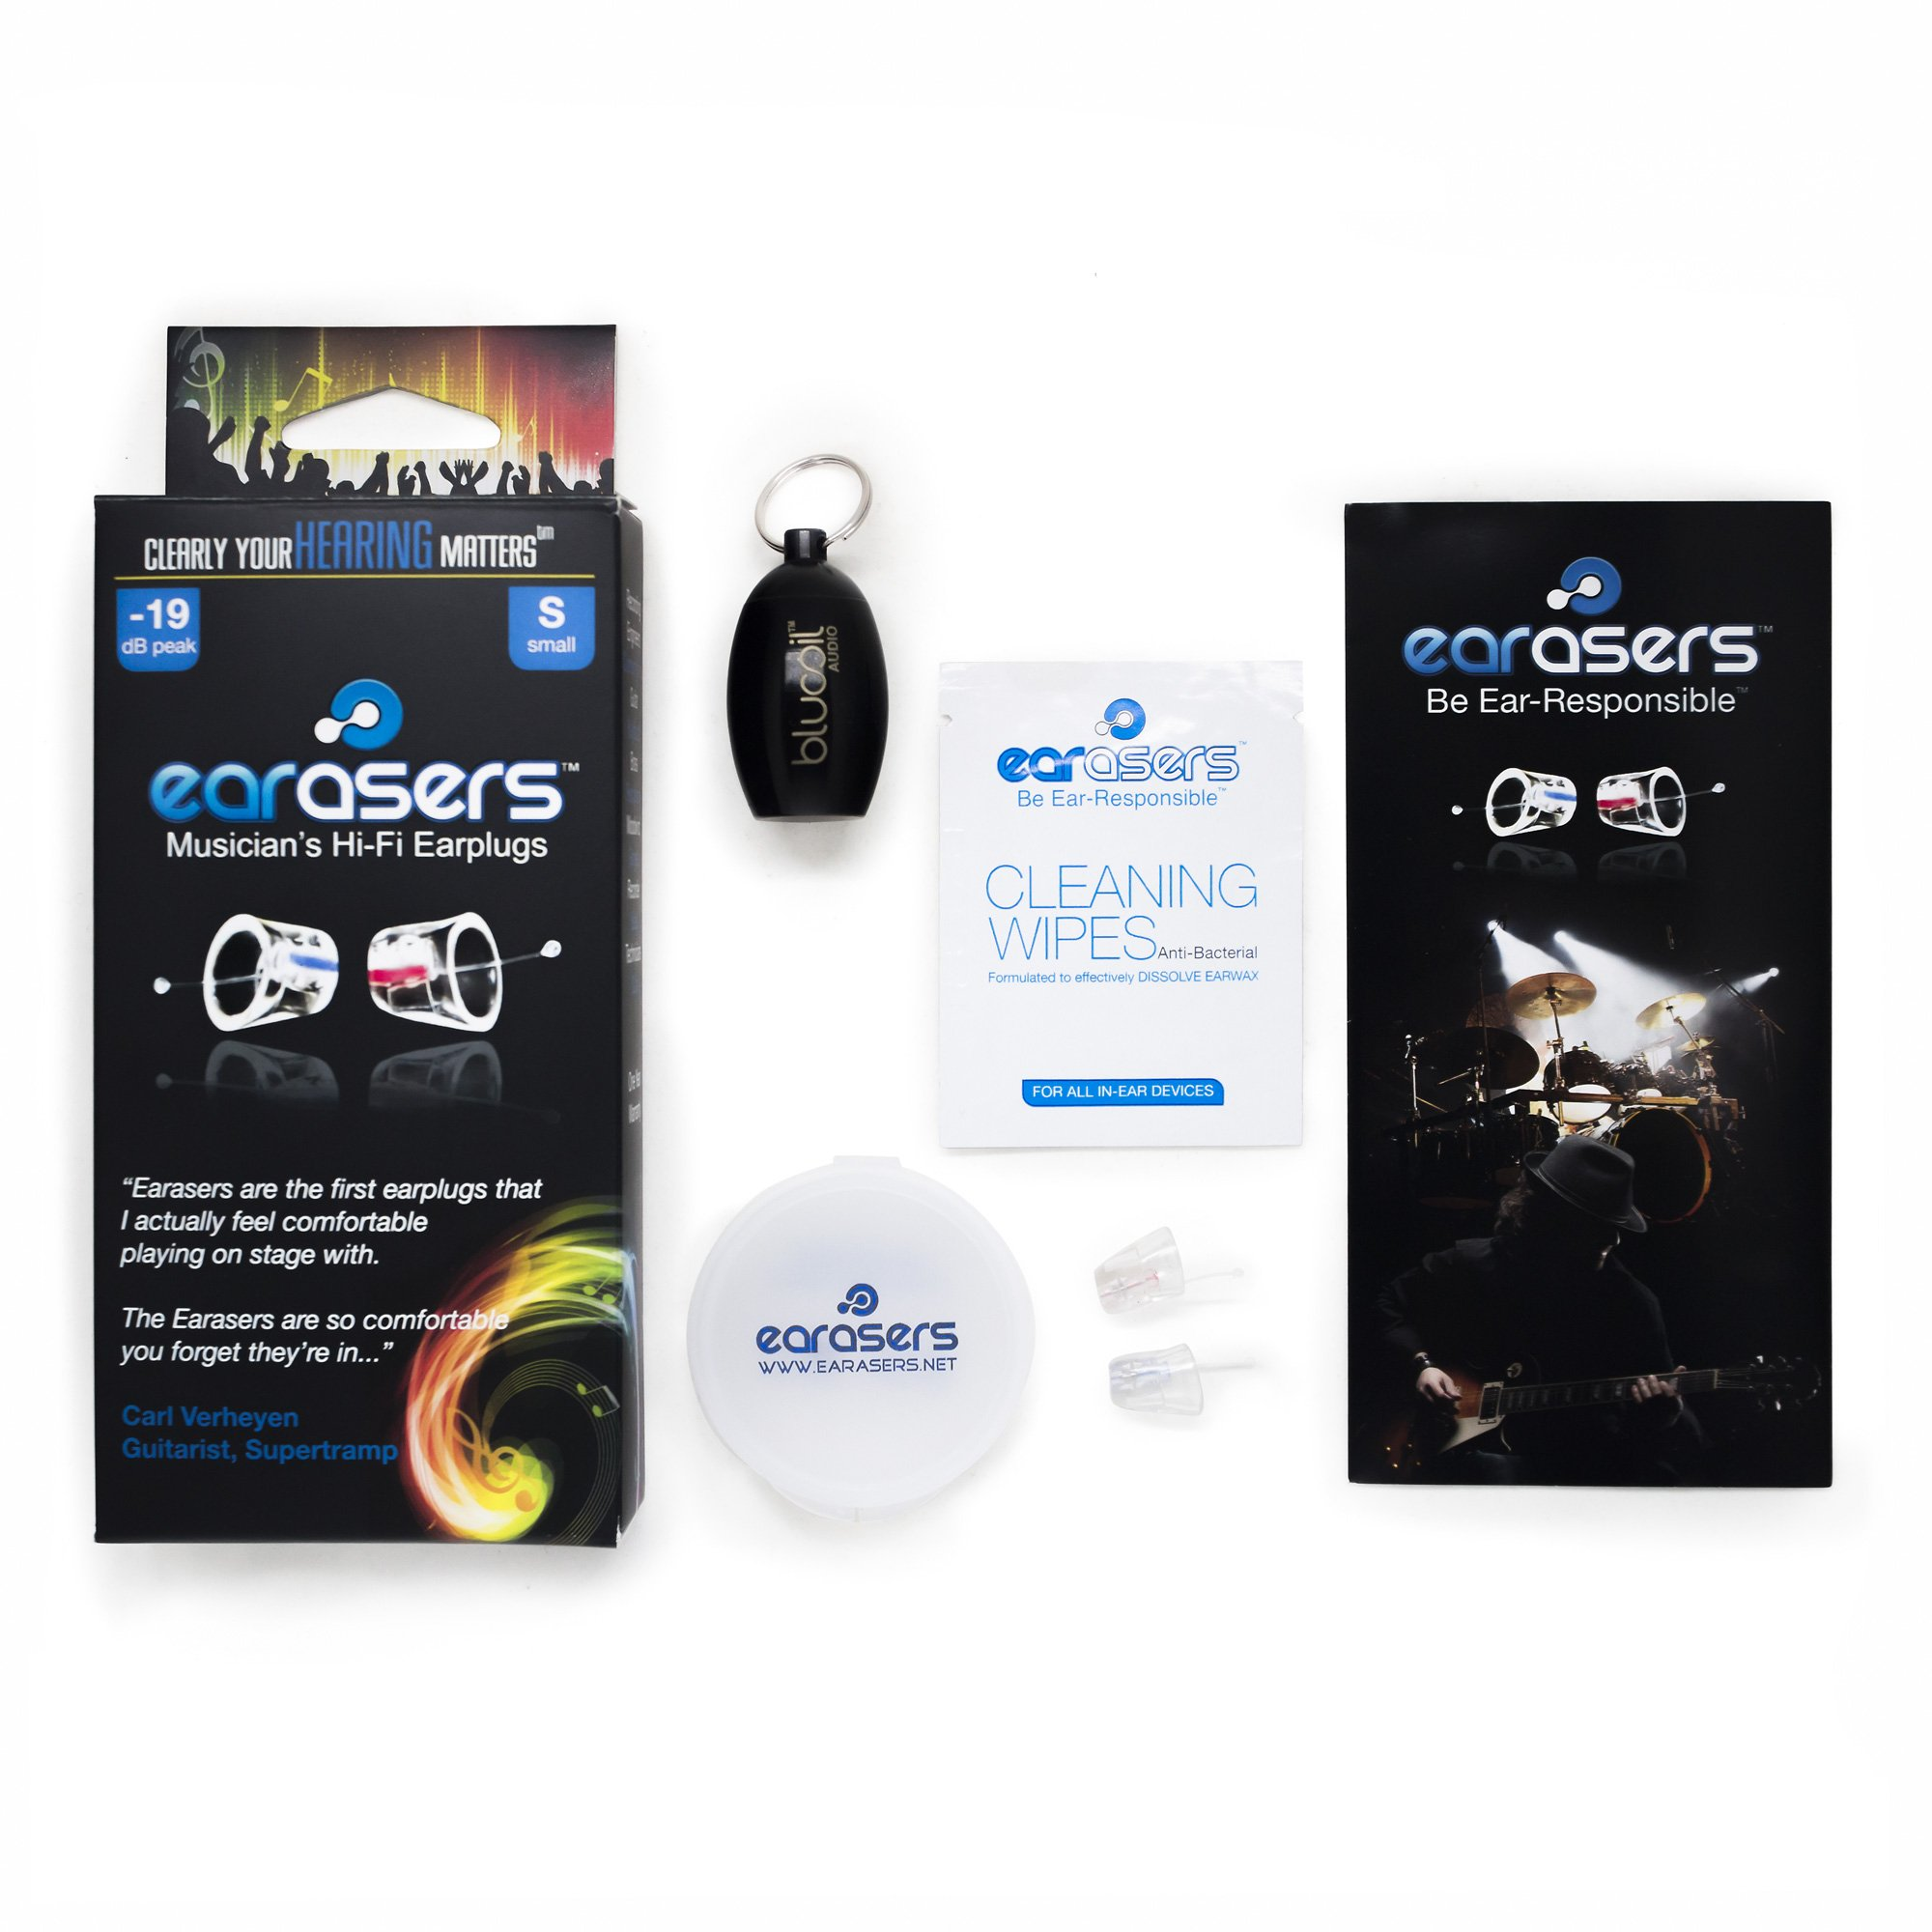 Earasers High Fidelity Musician's Ear Plugs - INCLUDES - Blucoil Limited Edition BLACK Carrying Case (Small) by blucoil